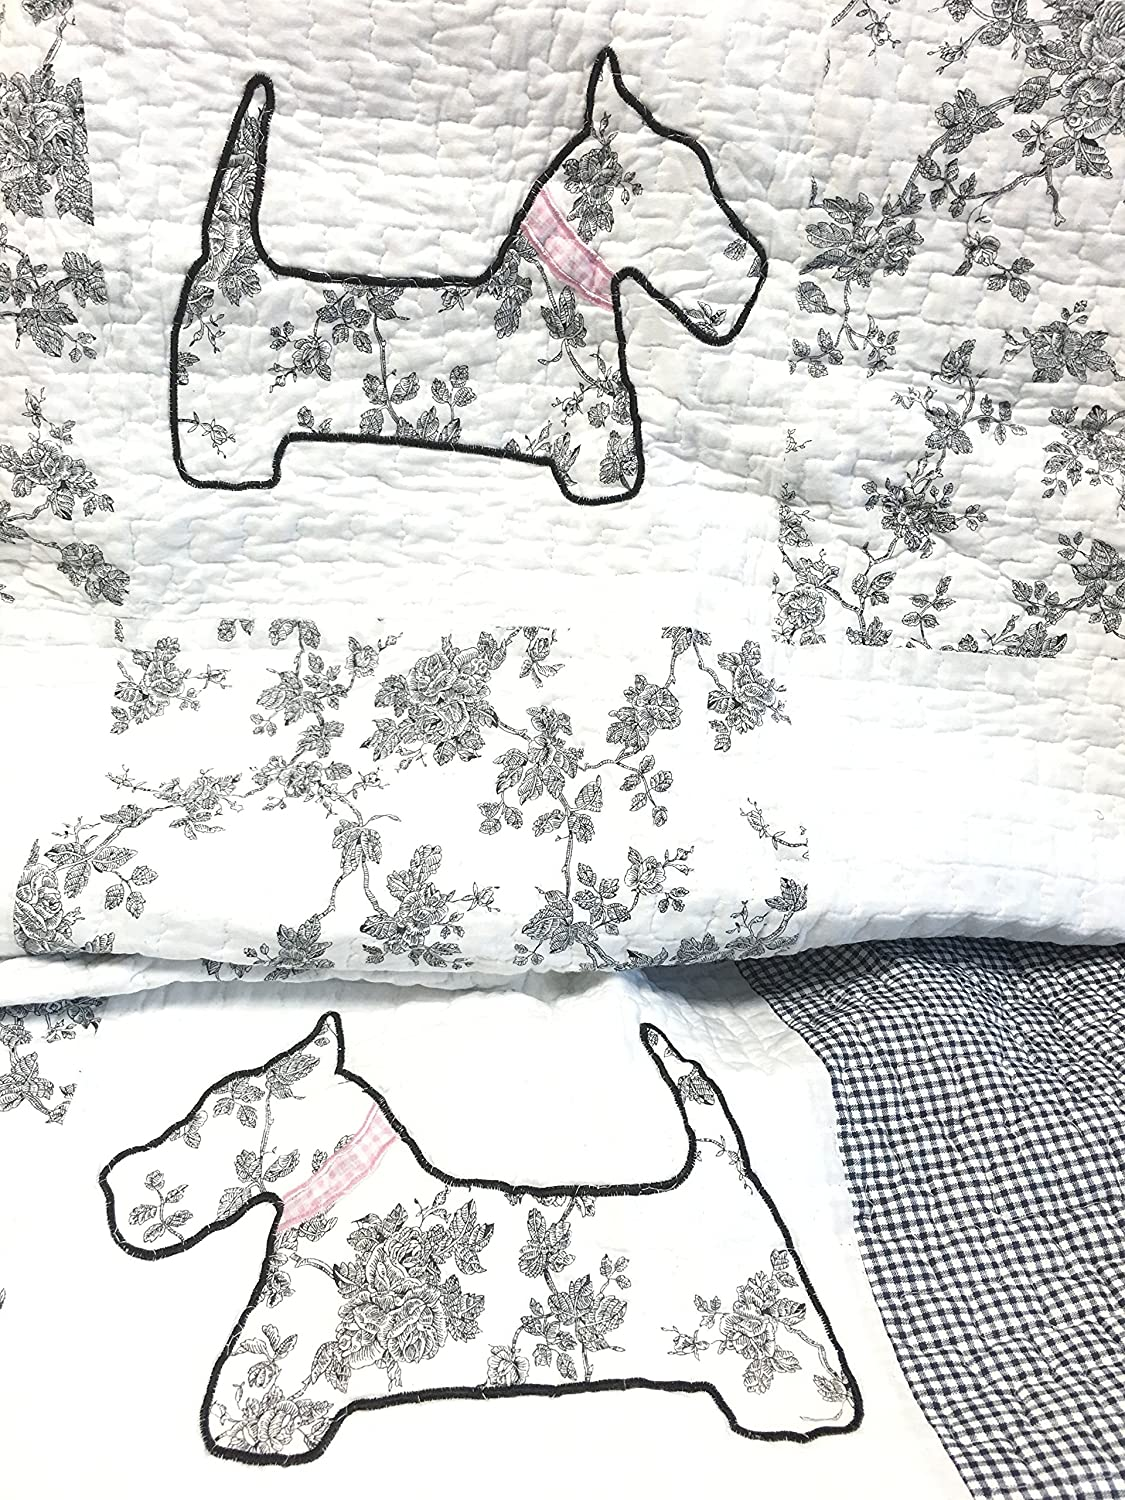 Amazon Com Cozy Line Home Fashions Scottie Pup Pink White Grey Dog Flower Pattern Printed Patchwork Cotton Bedding Quilt Set Coverlet Bedspreads Grey White Queen 3 Piece 1 Quilt 2 Standard